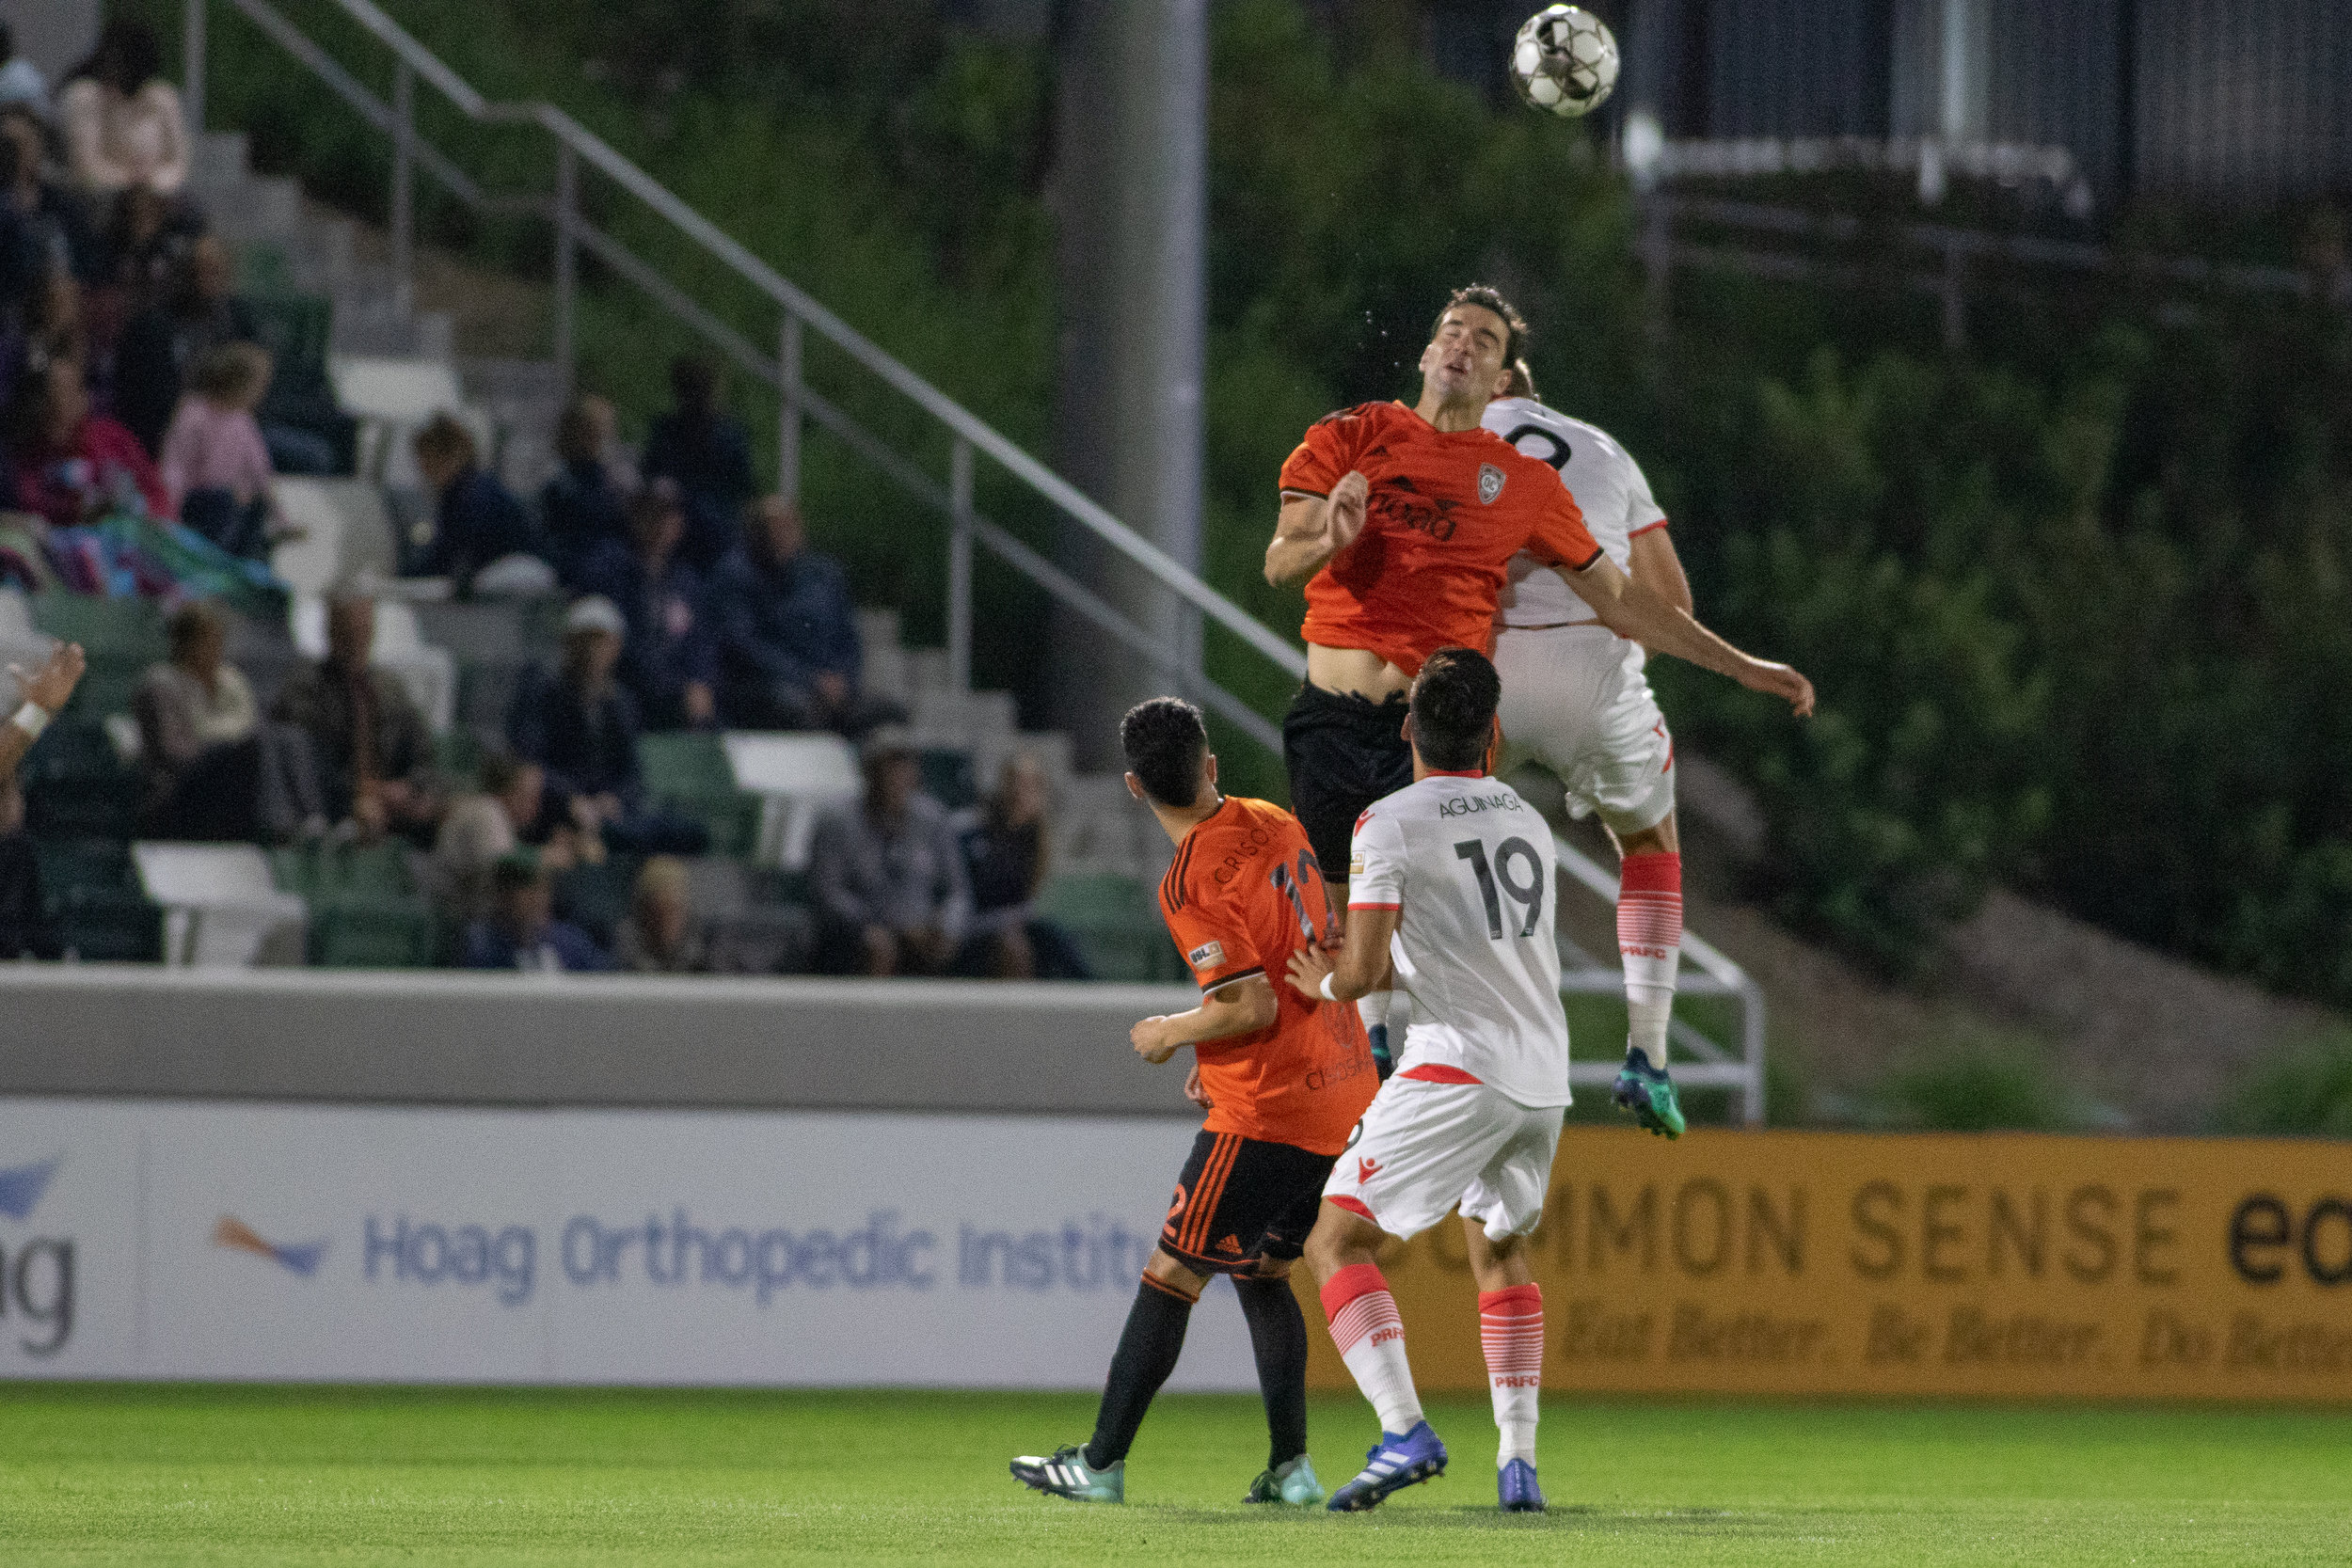 Walker Hume (right) using all of his height to clear a ball against Phoenix Rising FC in May. The center back will be tasked with knocking crosses down or putting them on frame on Sunday.  Photo courtesy of Liza Rosales/Orange County SC .